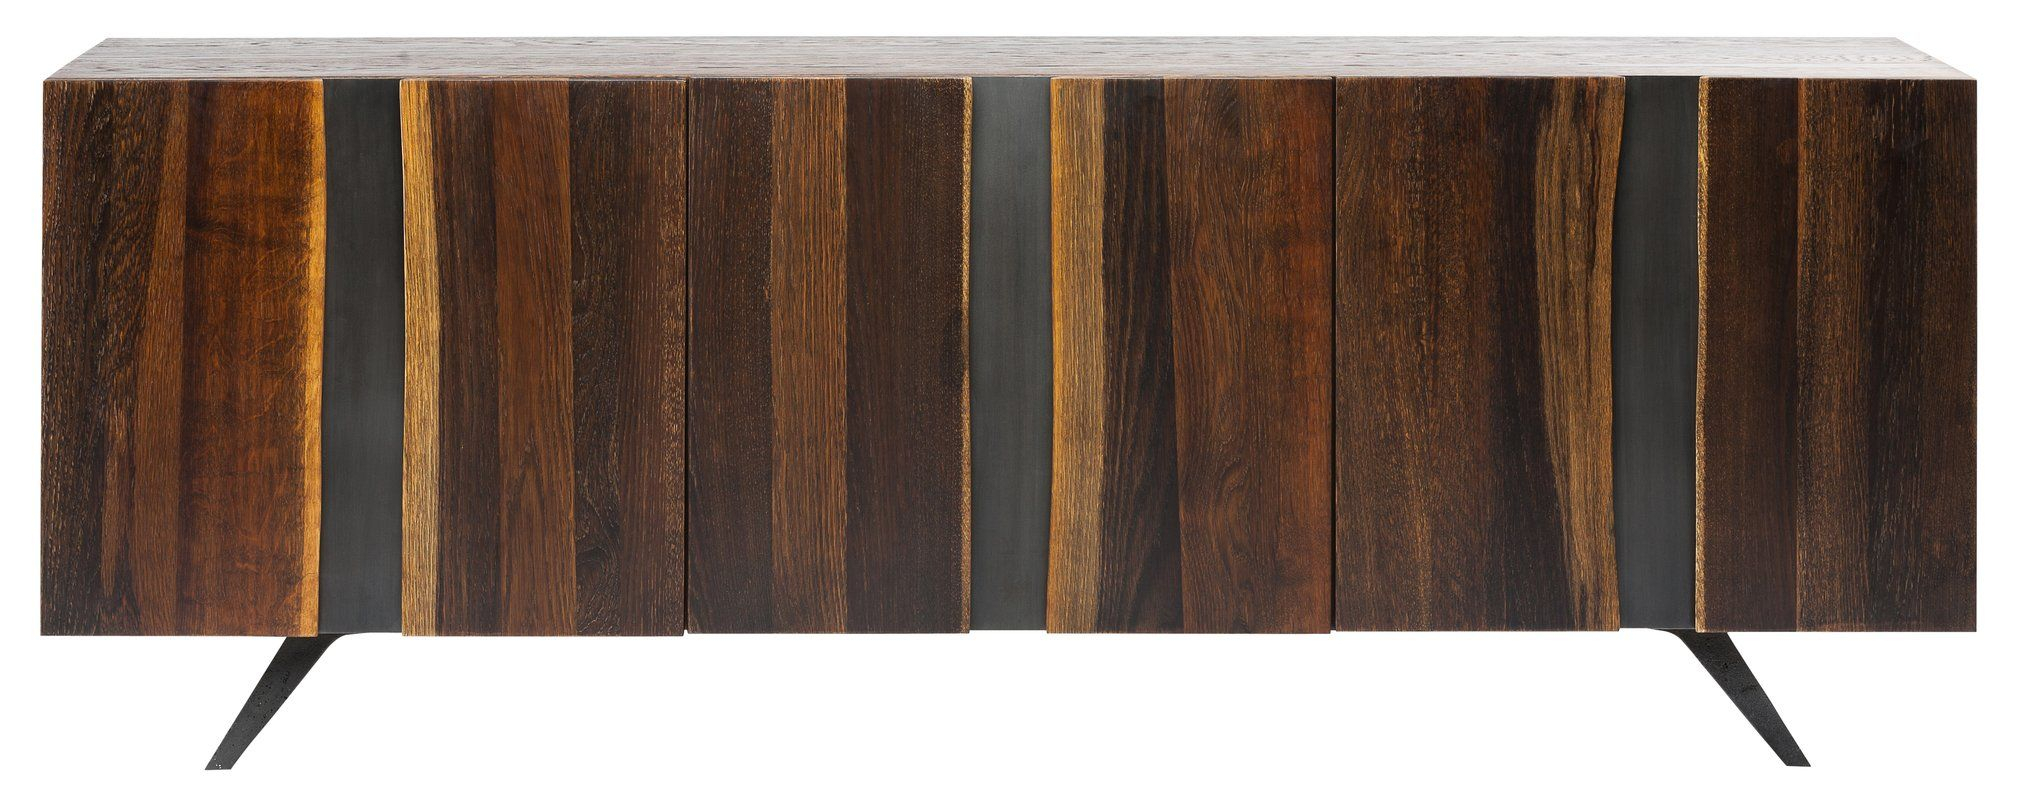 Vega Vertical Sideboard | Srid Furniture | Grape Kitchen Pertaining To Sideboards By Foundry Select (View 29 of 30)